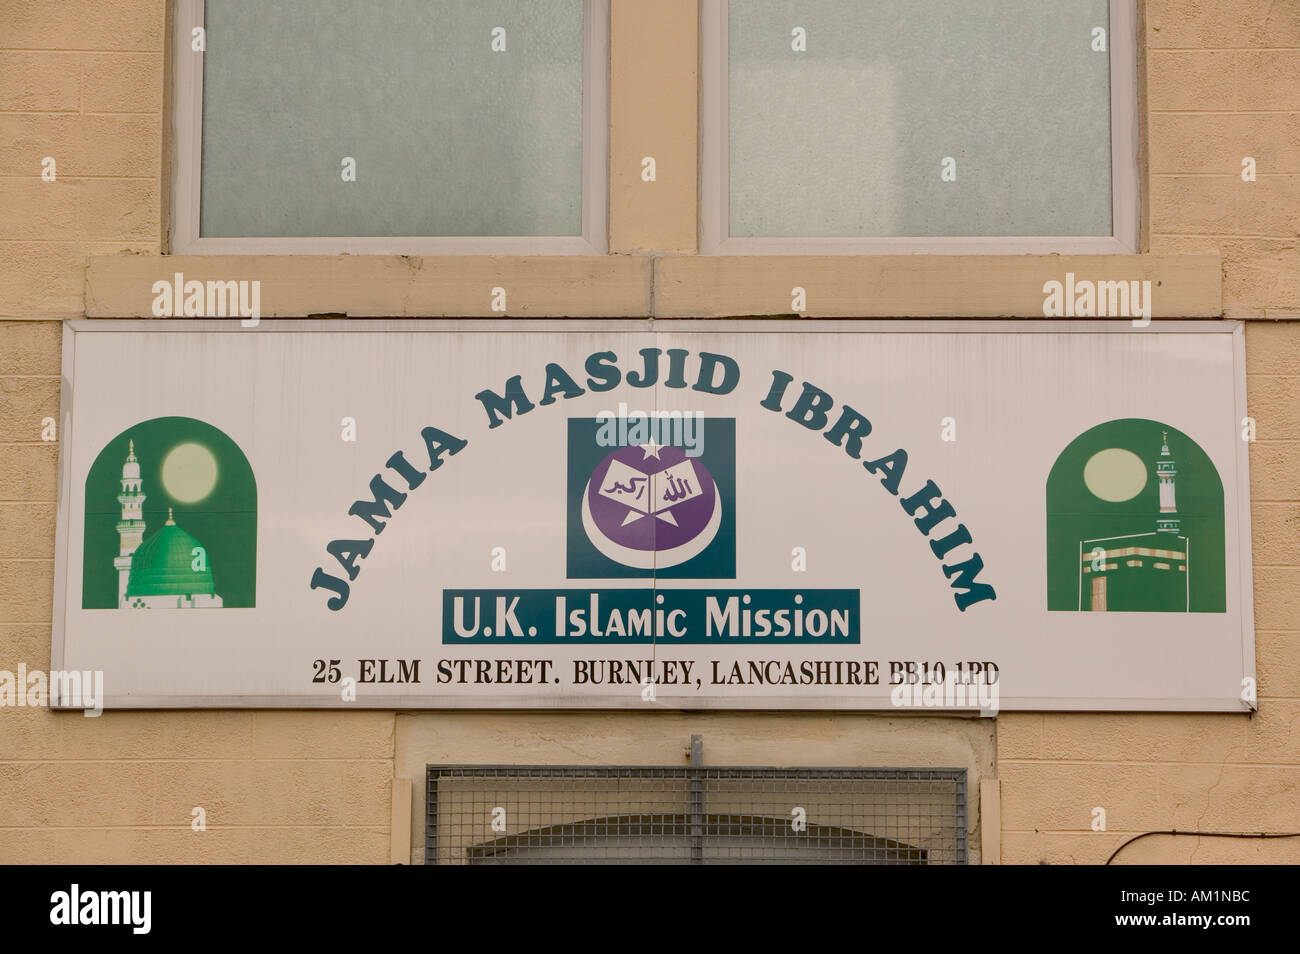 Islamic Mission on the streets of Burnley - Stock Image